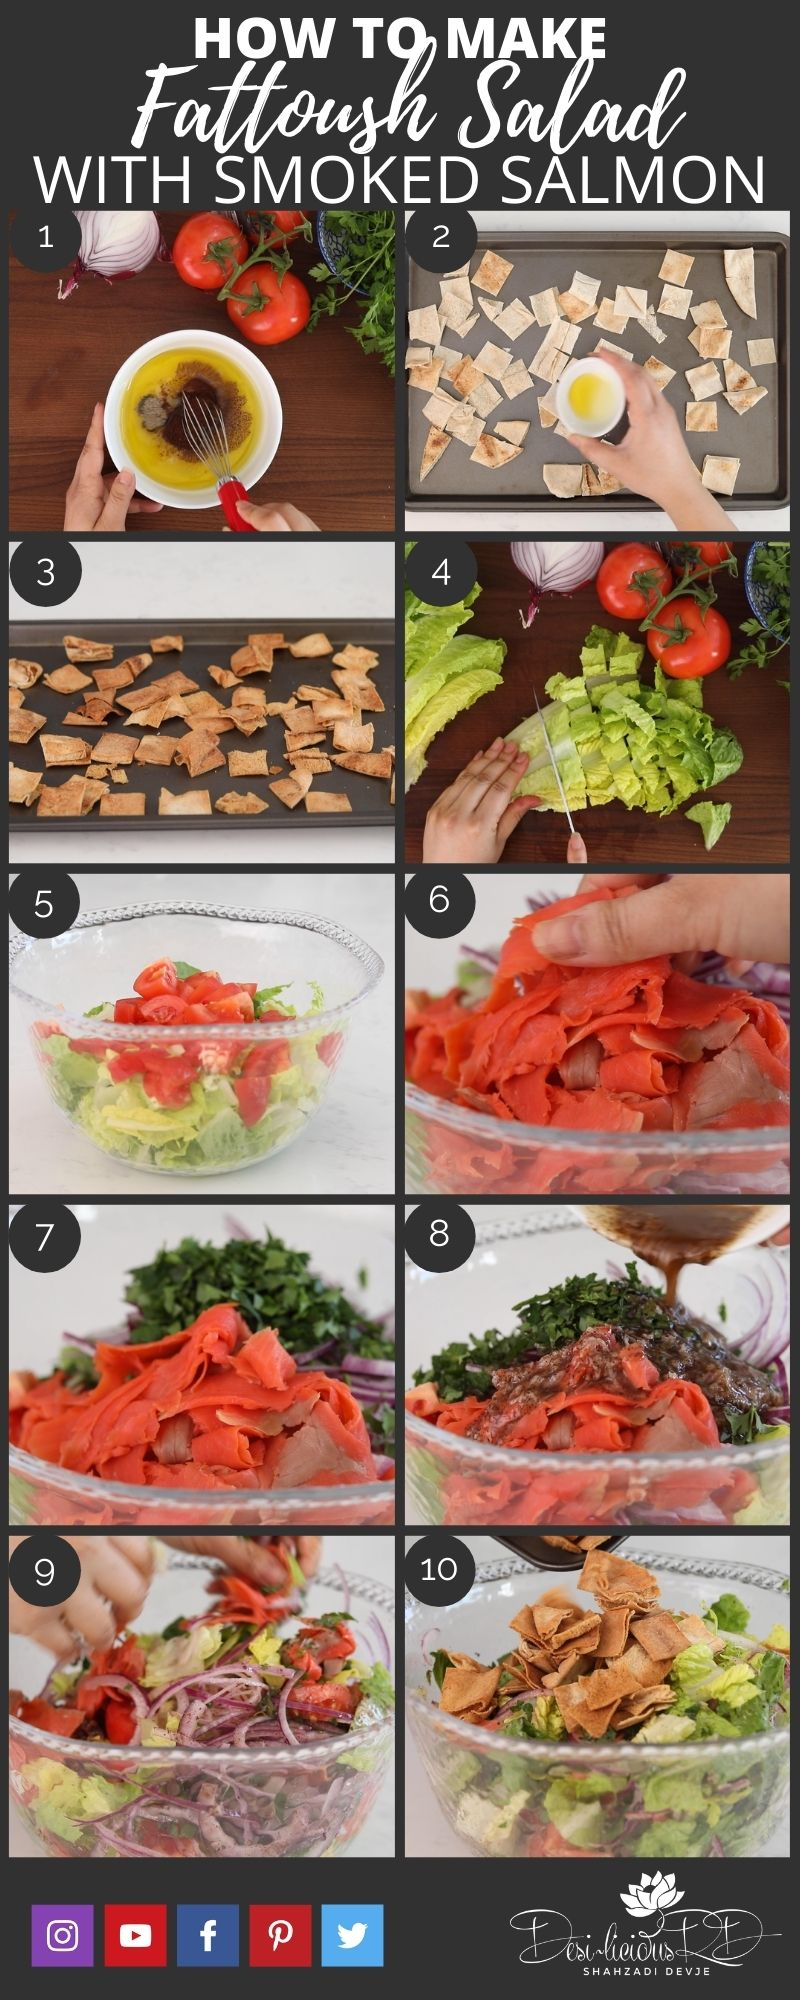 step by step prep shots of how to make fattoush salad with smoked salmon